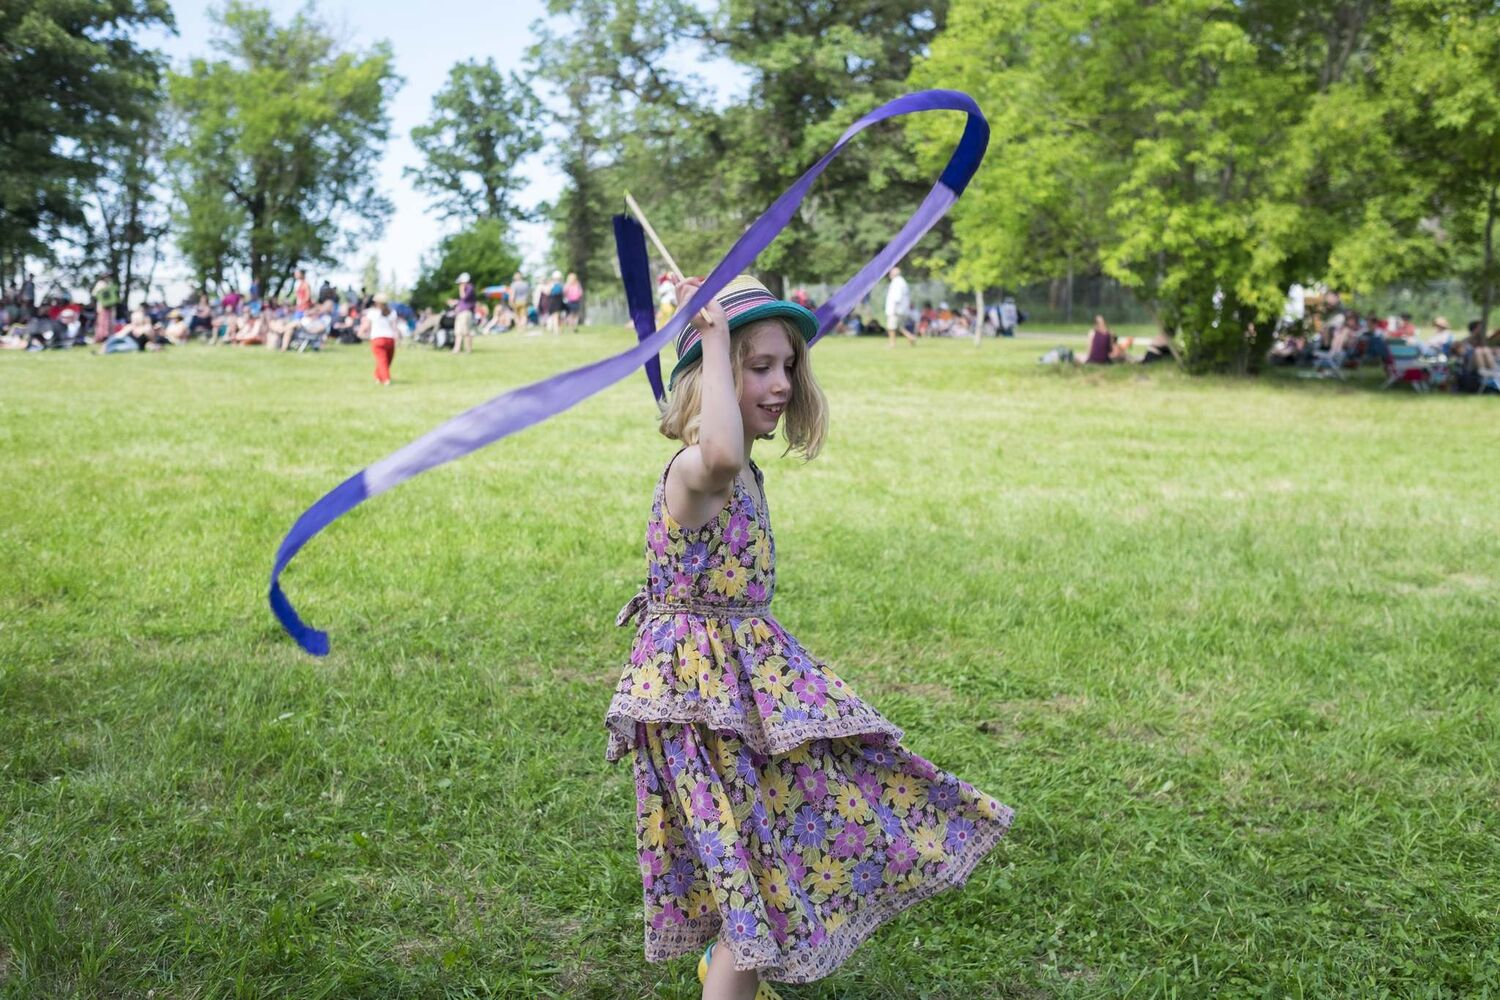 ZACHARY PRONG / WINNIPEG FREE PRESS</p></p><p>Rosemary, 7, dances at Folkfest on Friday.</p>